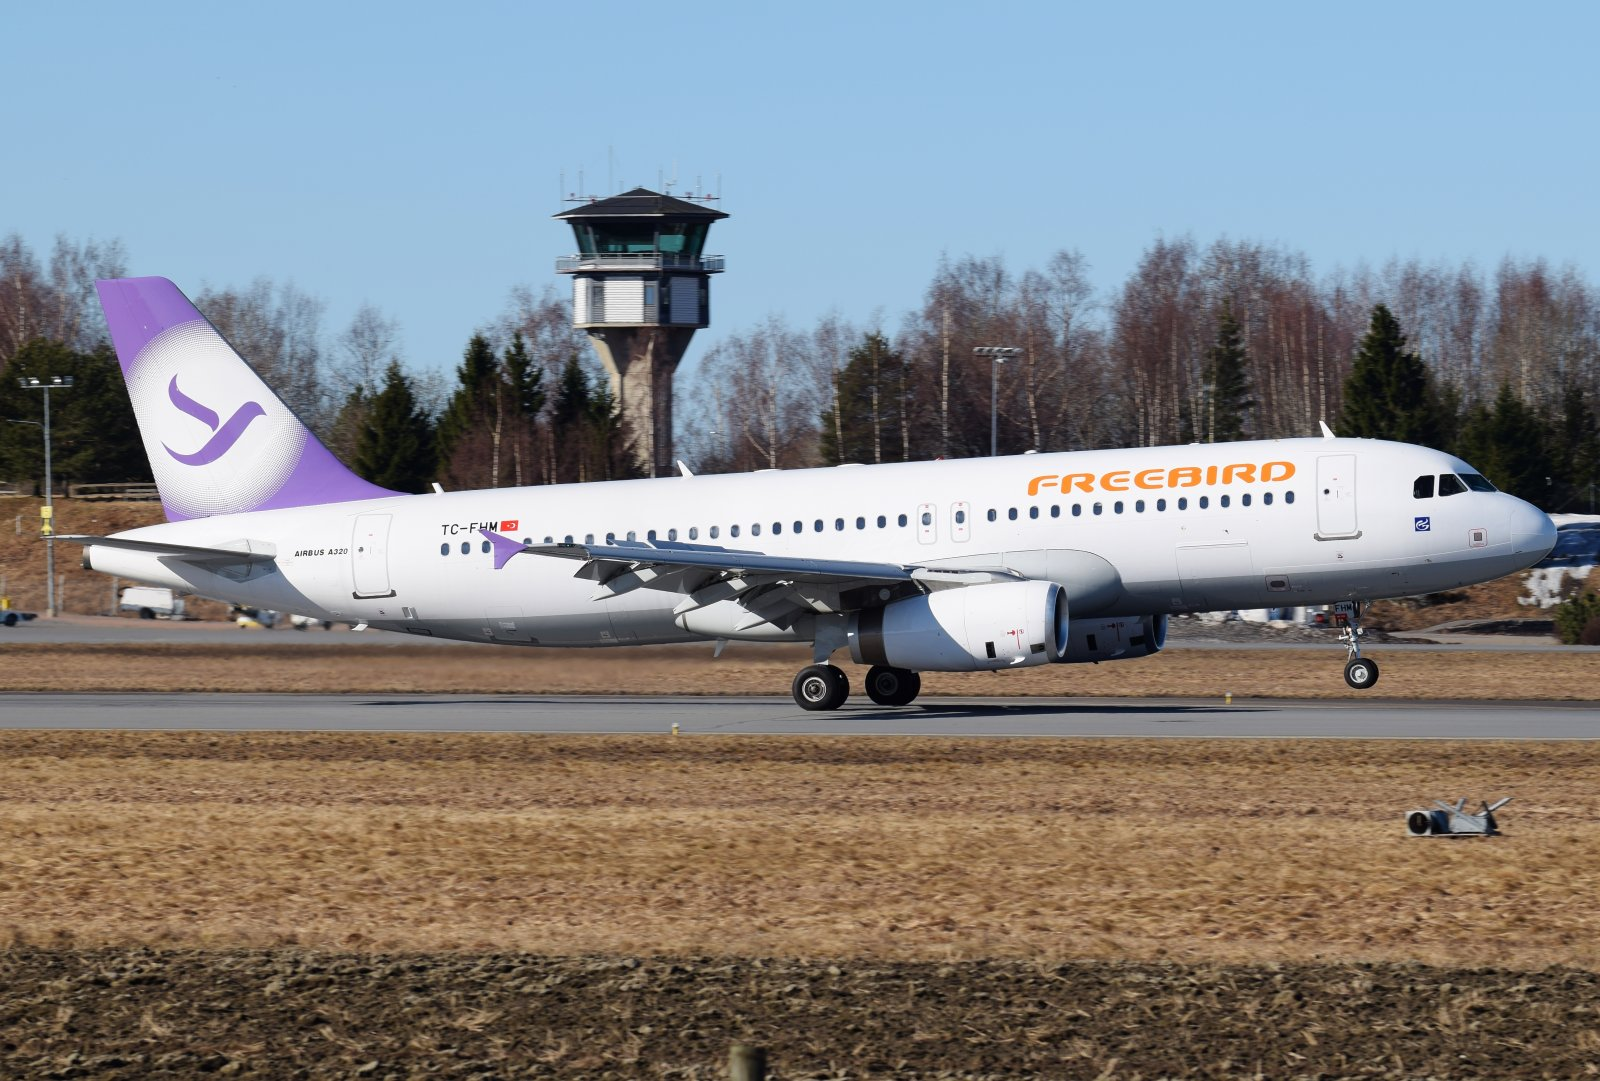 TC-FHM - Airbus A320-232 - Freebird Airlines - 17.4.2019